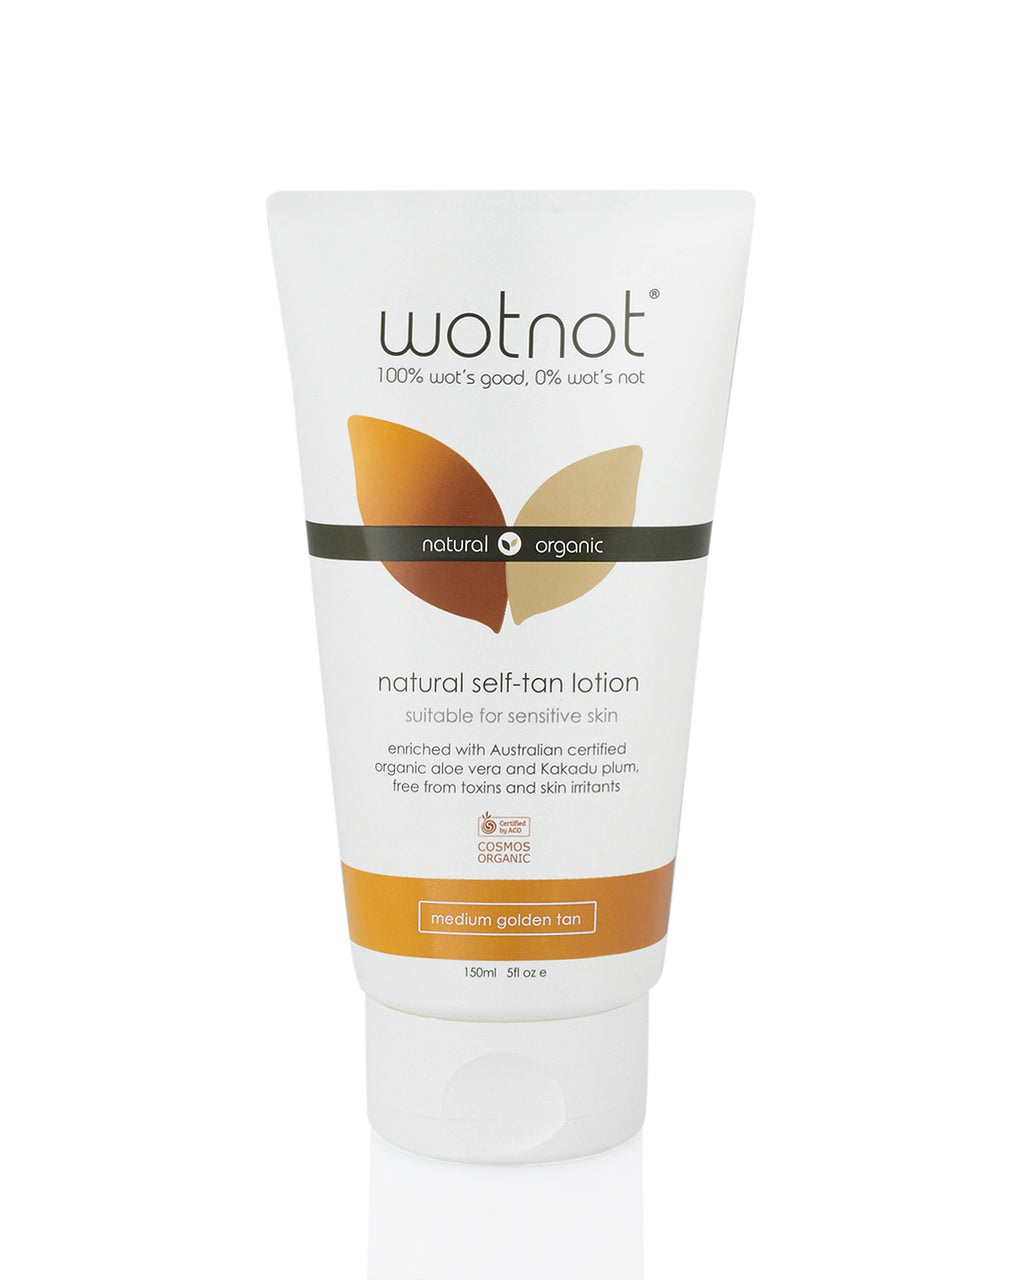 Wotnot COSMOS Certified Organic Self-tanning Lotion (150ml)